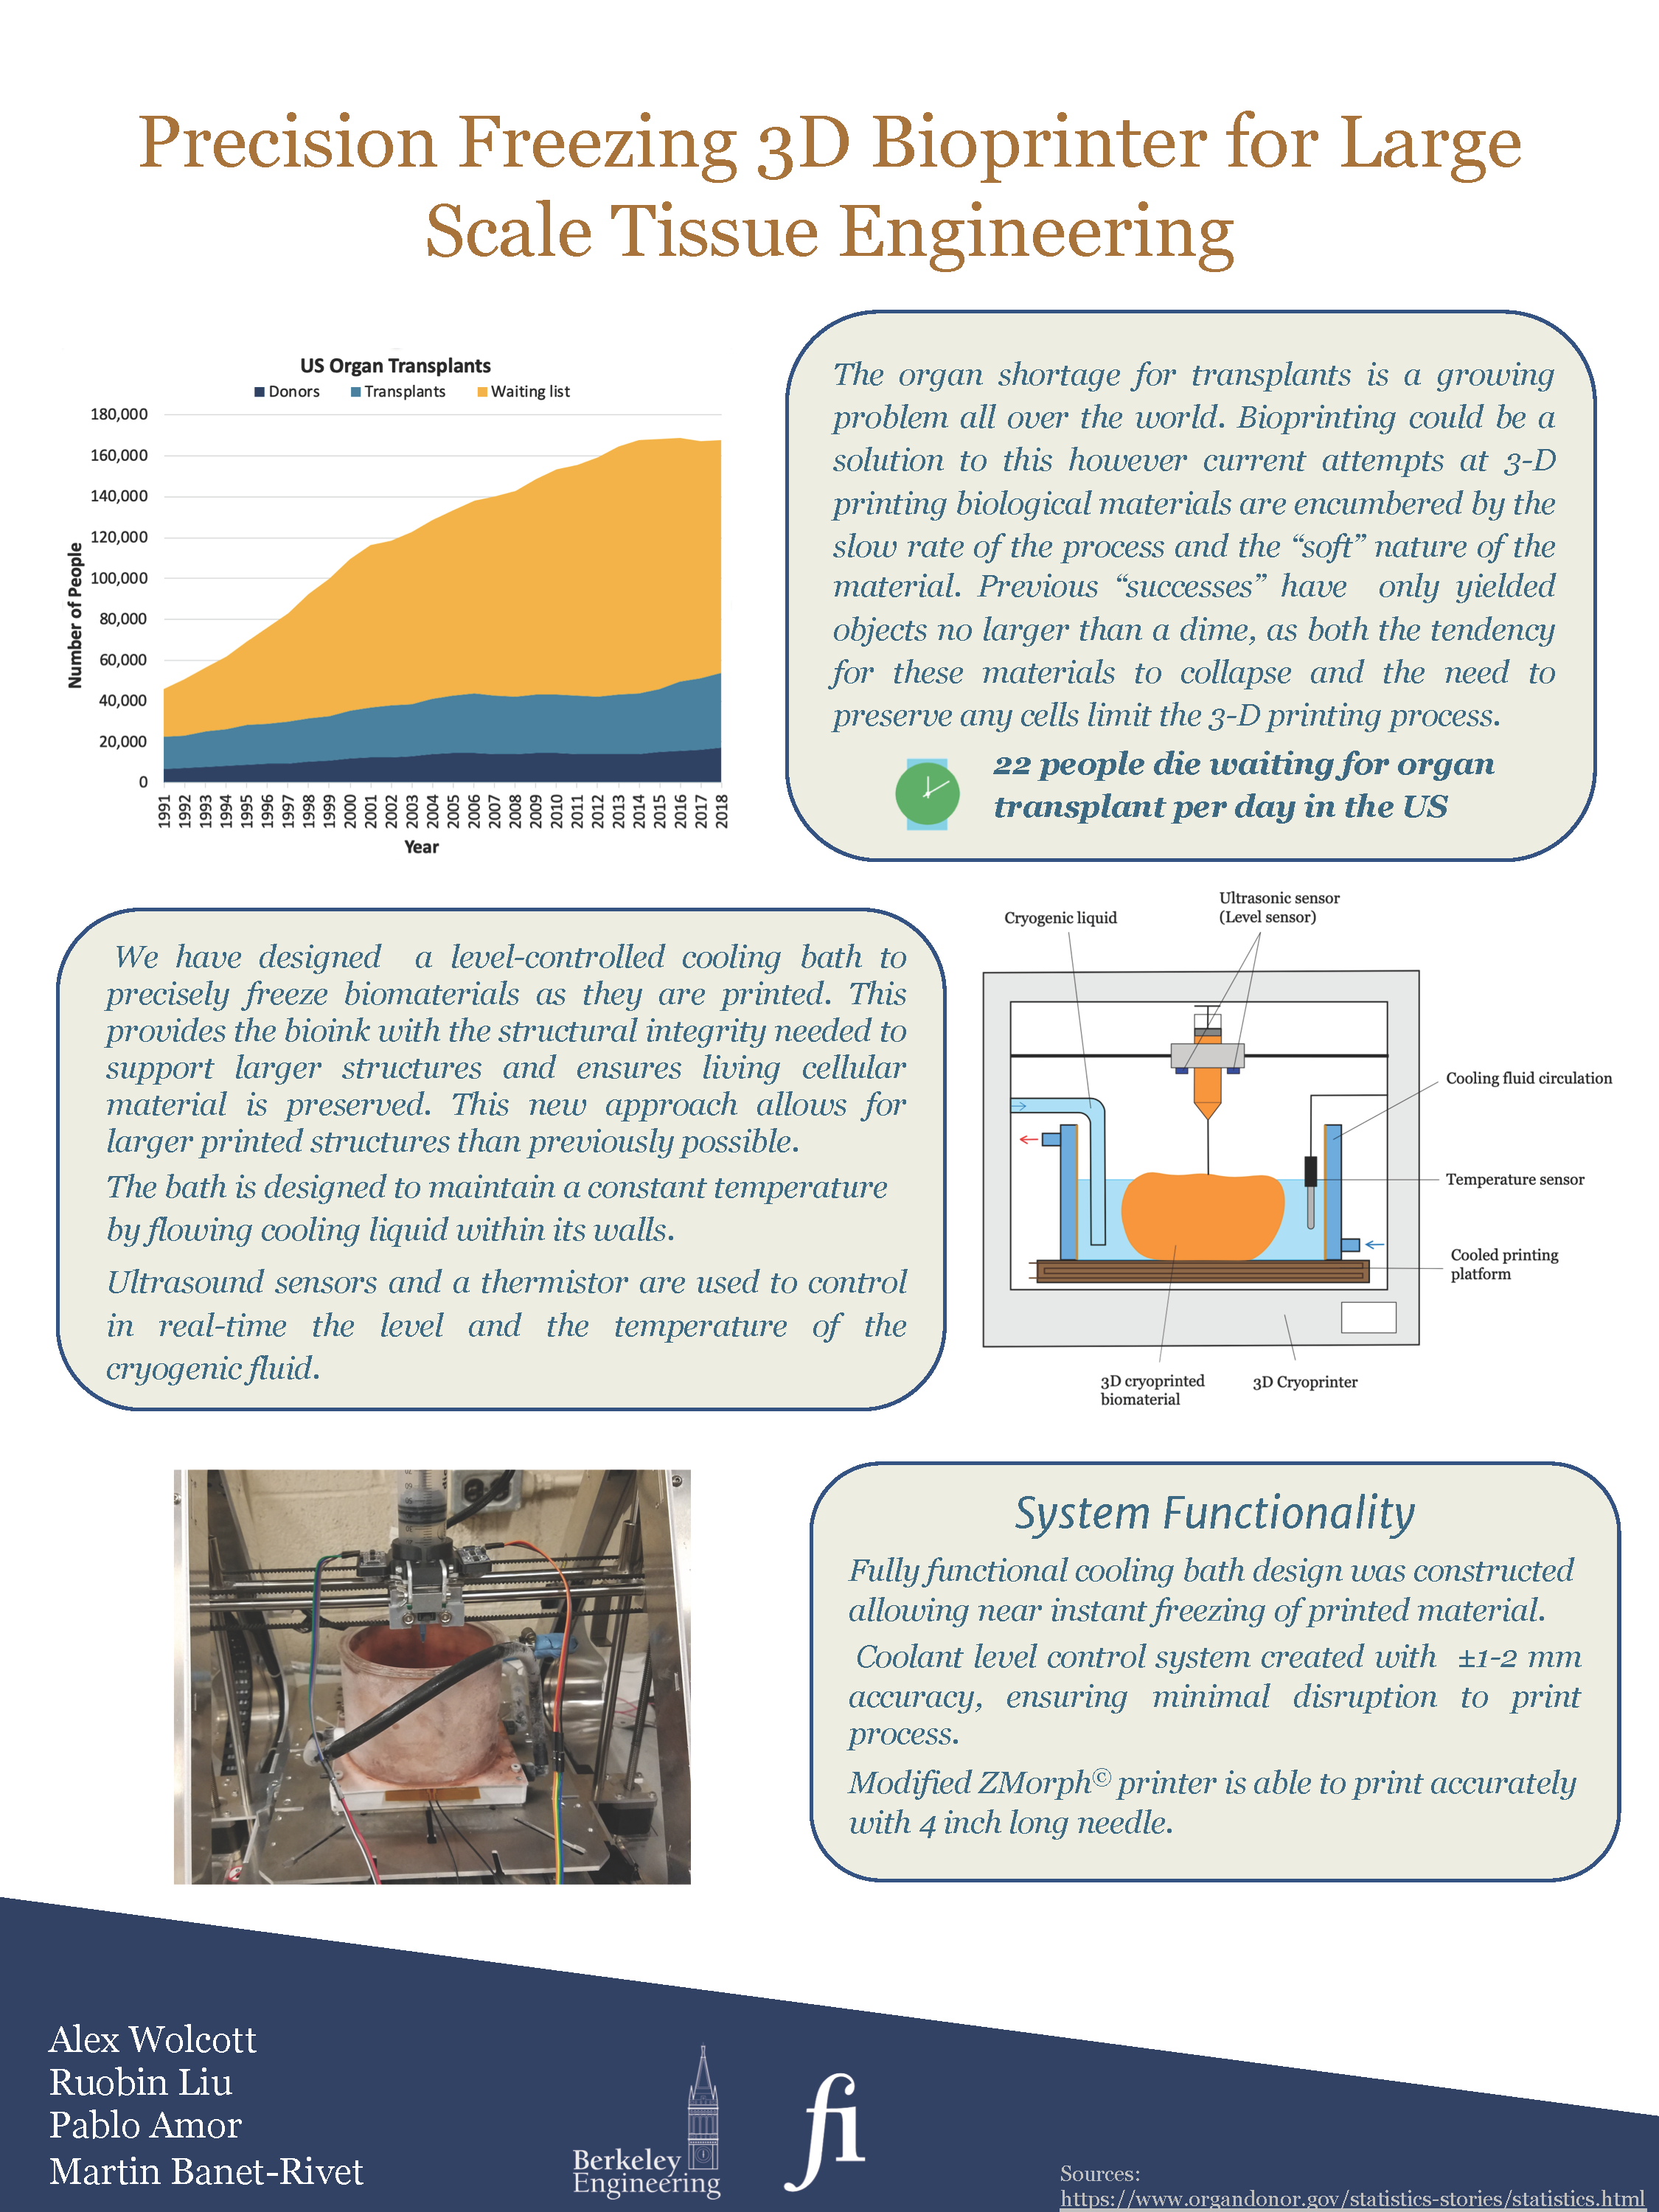 Project brief of how the bioprinting works.